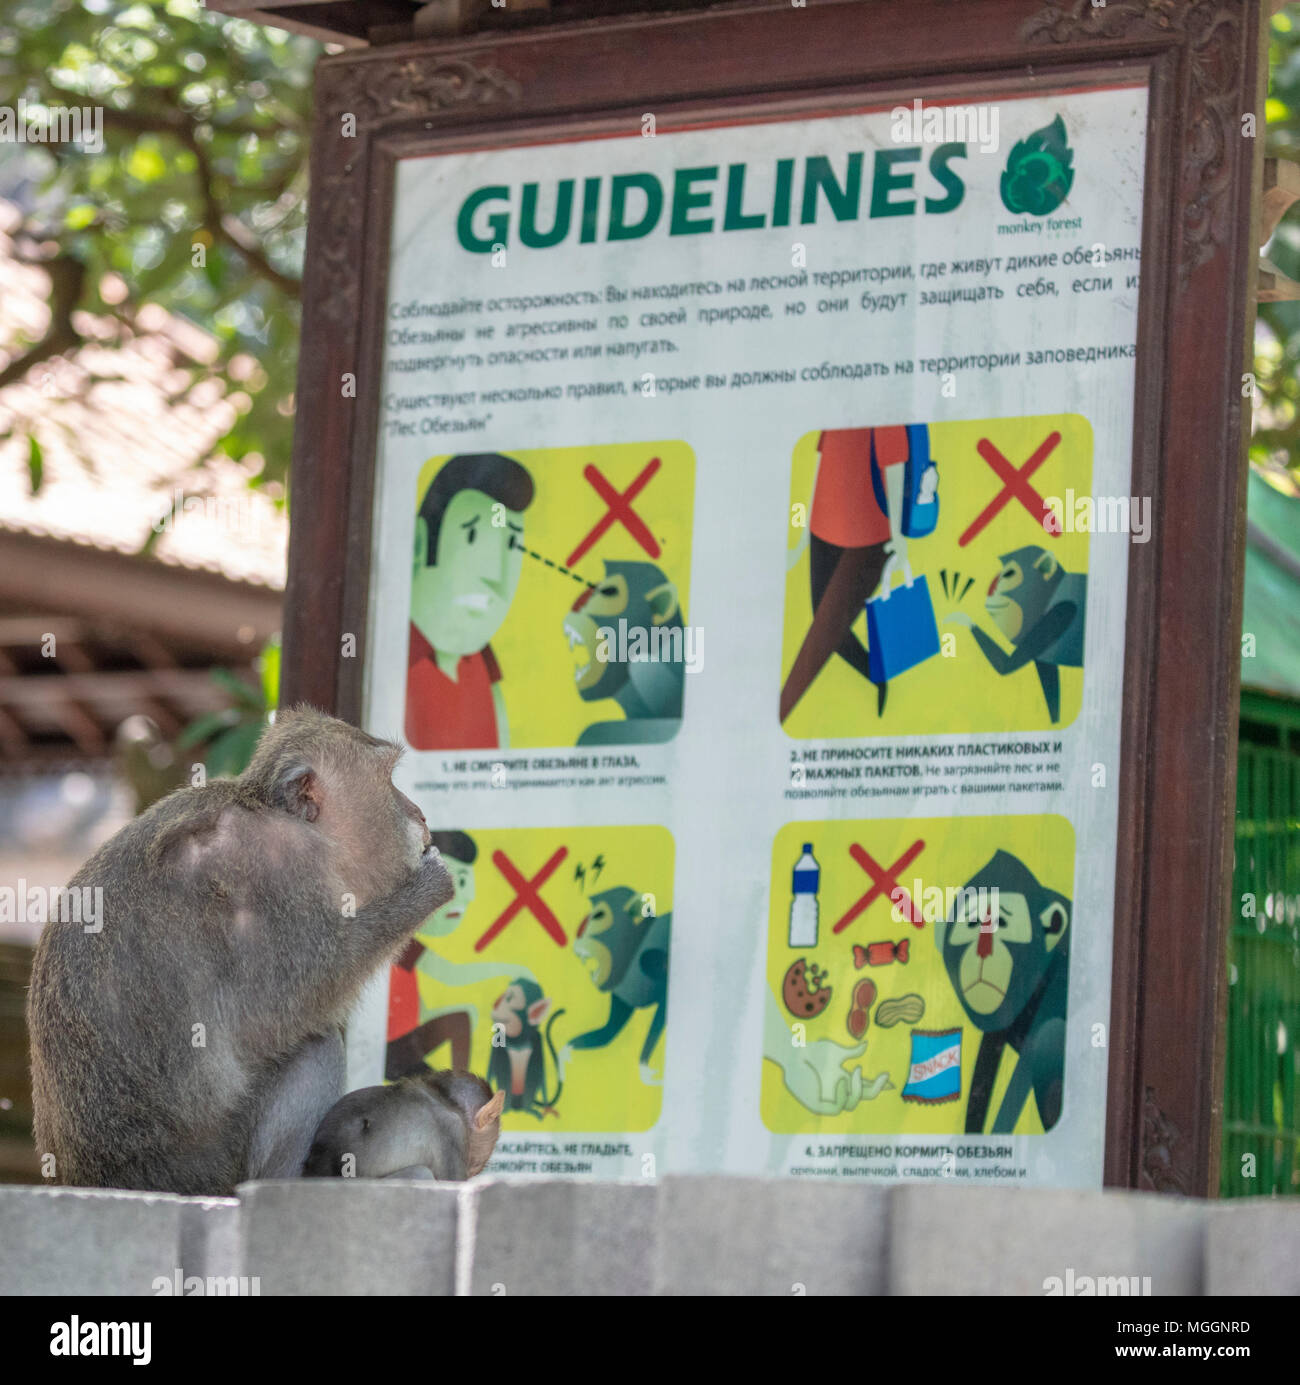 Monkey appearing to read guidelines to tourists about interactions with animals, Ubud, Bali, Indonesia - Stock Image